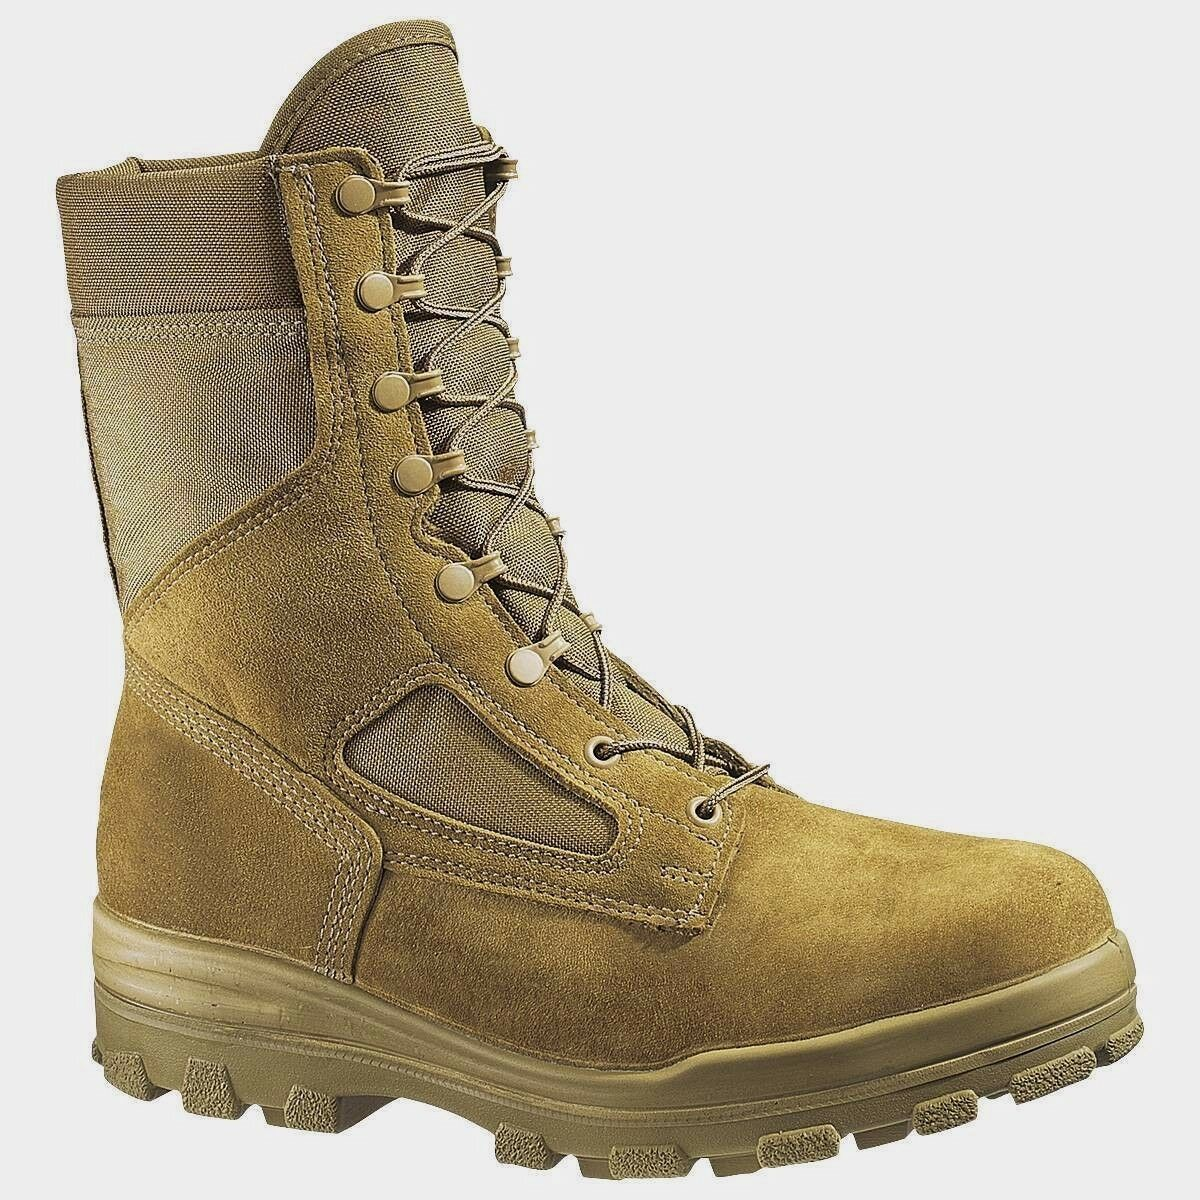 BATES 70701 US MARINES BOOTS ORIGINAL STEEL TOE MADE IN USA COYOTE 7-14 R EW